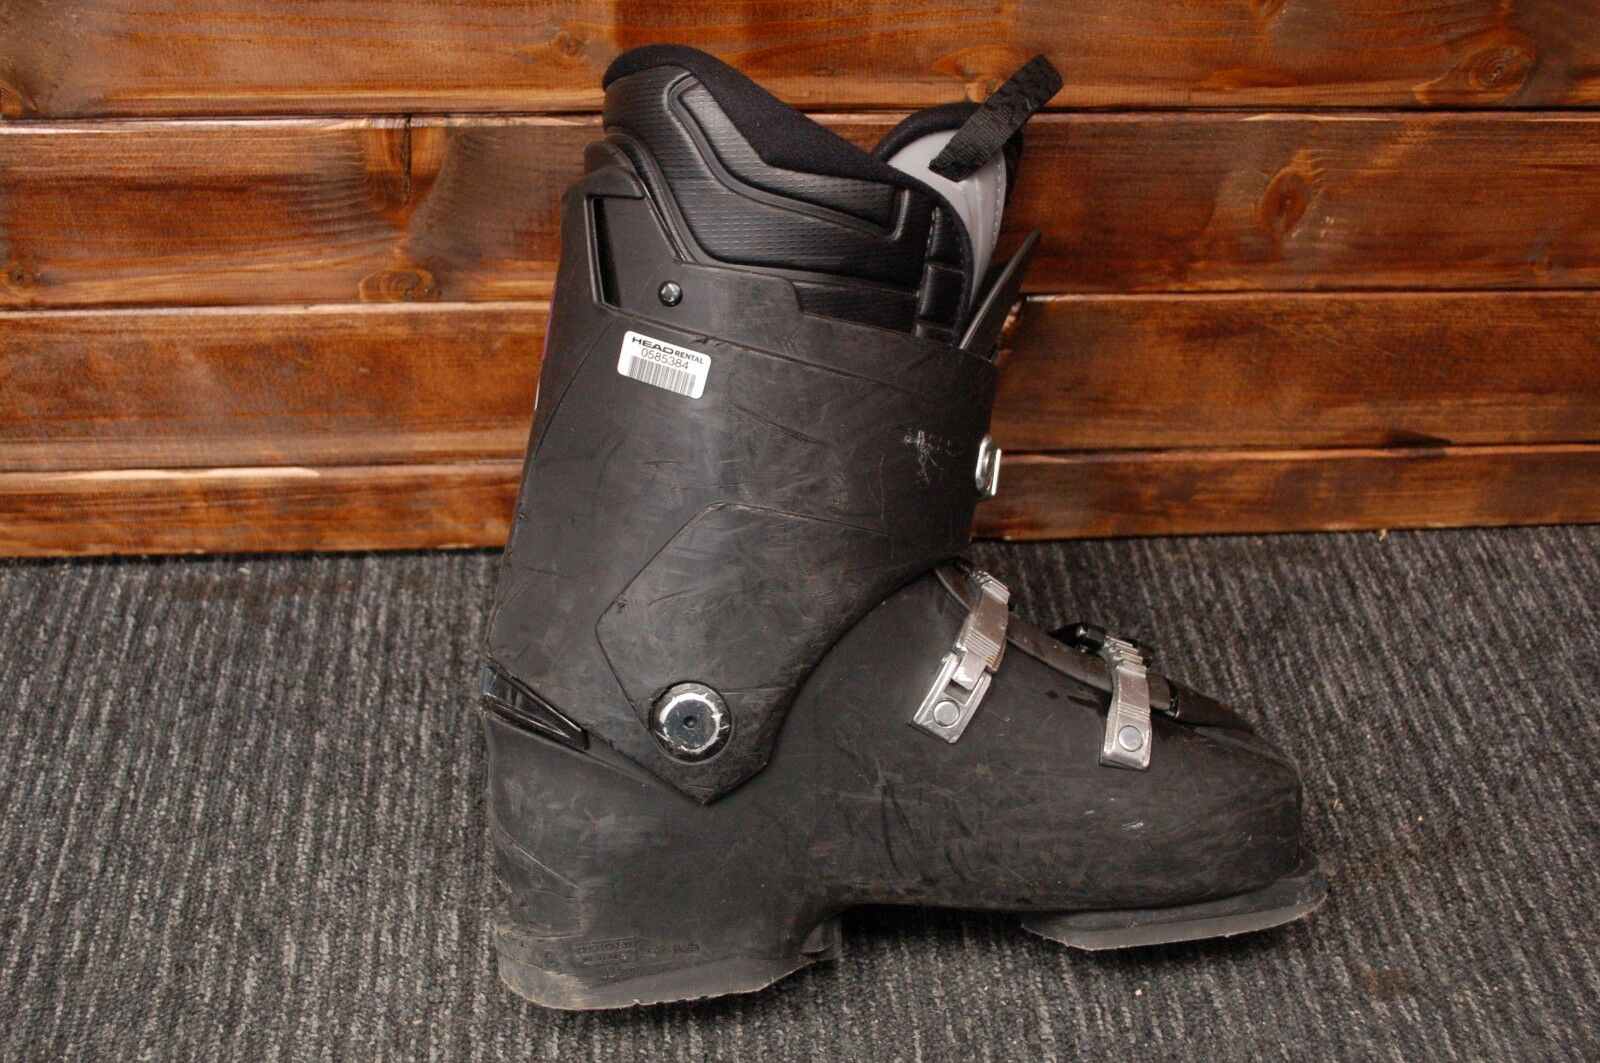 HEAD FX 65 HT Ski Stiefel (US 9; EU EU EU 42.5; UK 8.5) 76183c